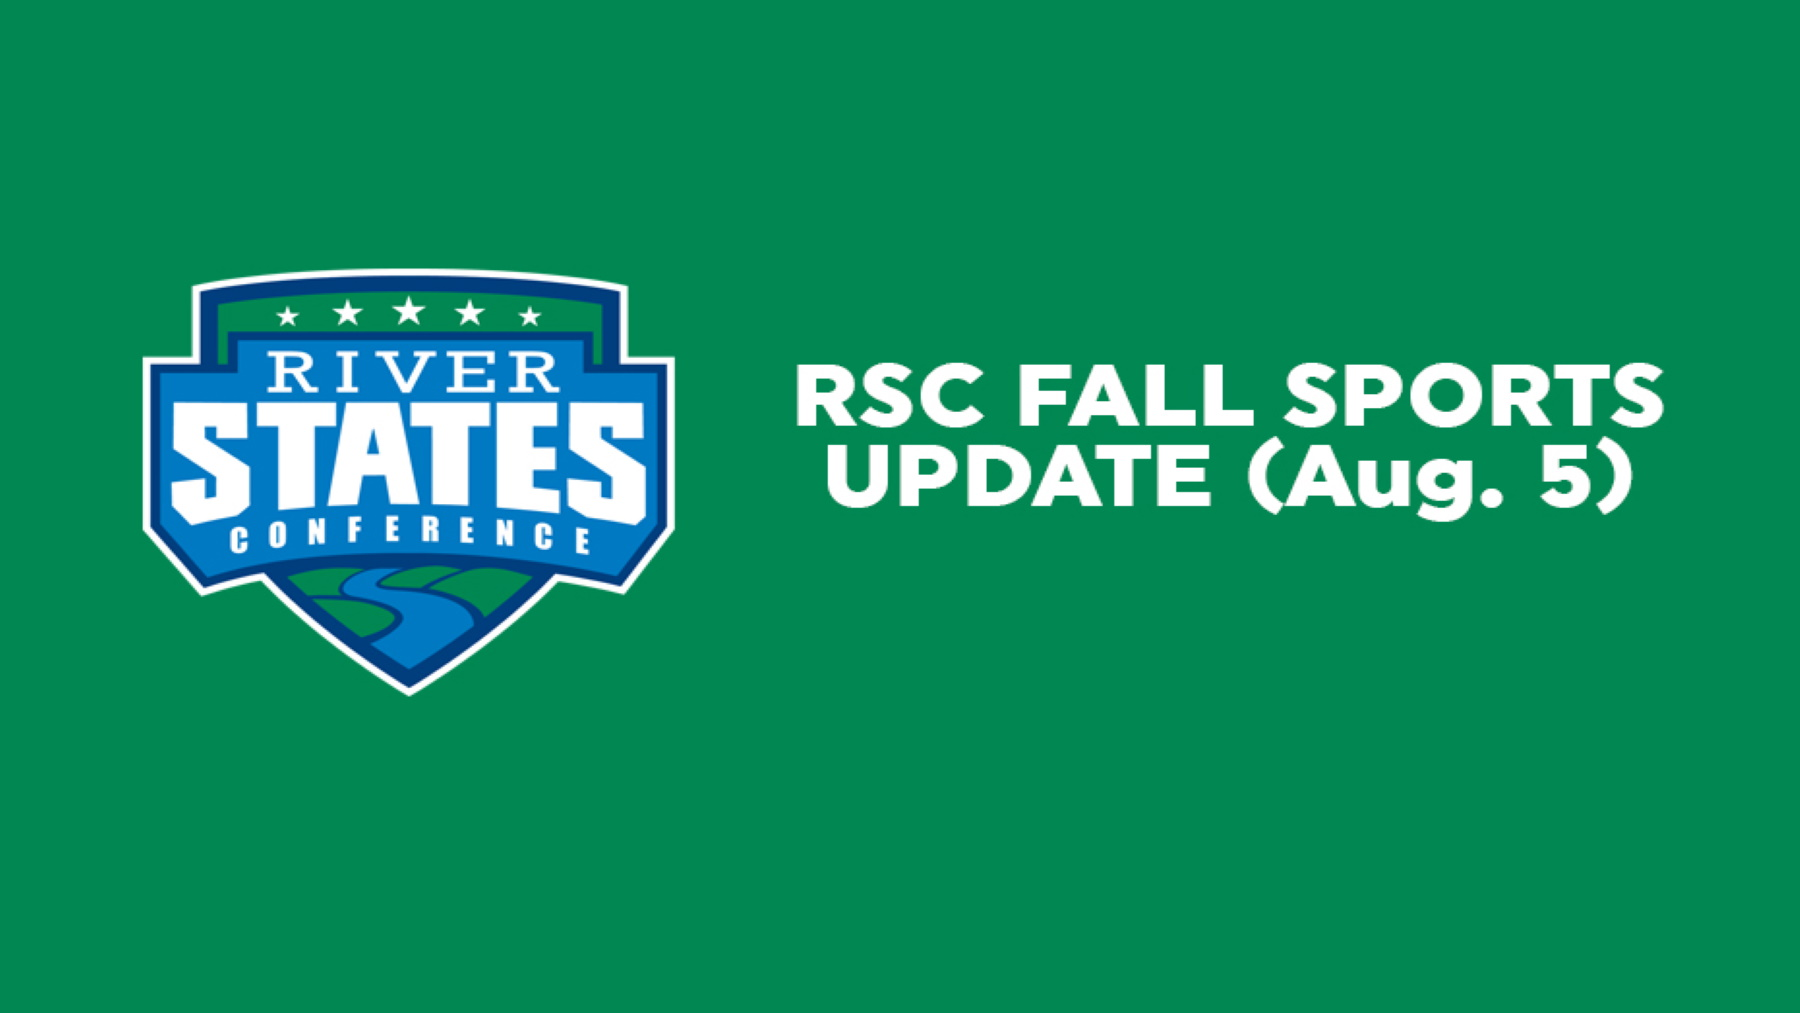 RIVER STATES CONFERENCE FALL SPORTS UPDATE (AUG. 5, 2020)